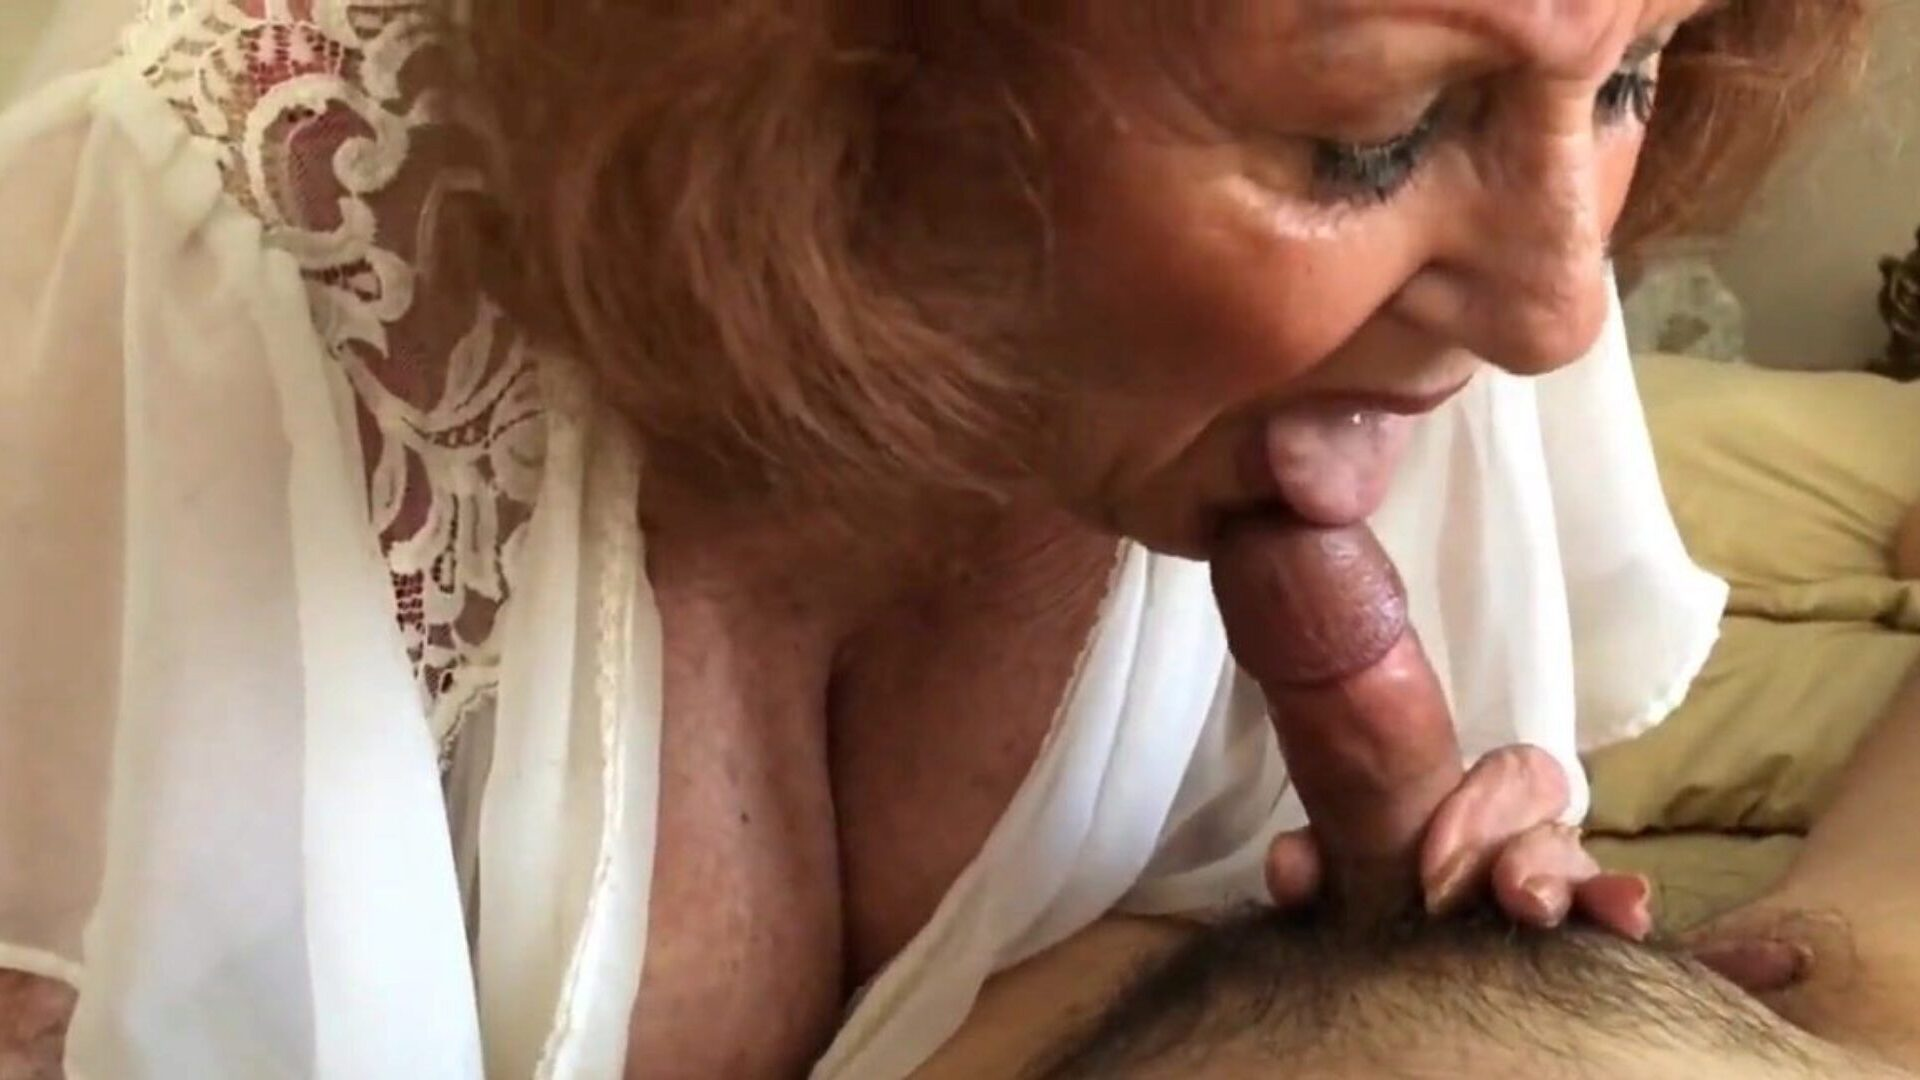 The Hottest Amateur Granny Still Craving Young Cock... Watch The Hottest Amateur Granny Still Craving Young Cock video on xHamster - the ultimate database of free-for-all Mature & Nice Ass HD gonzo porno tube movie scenes